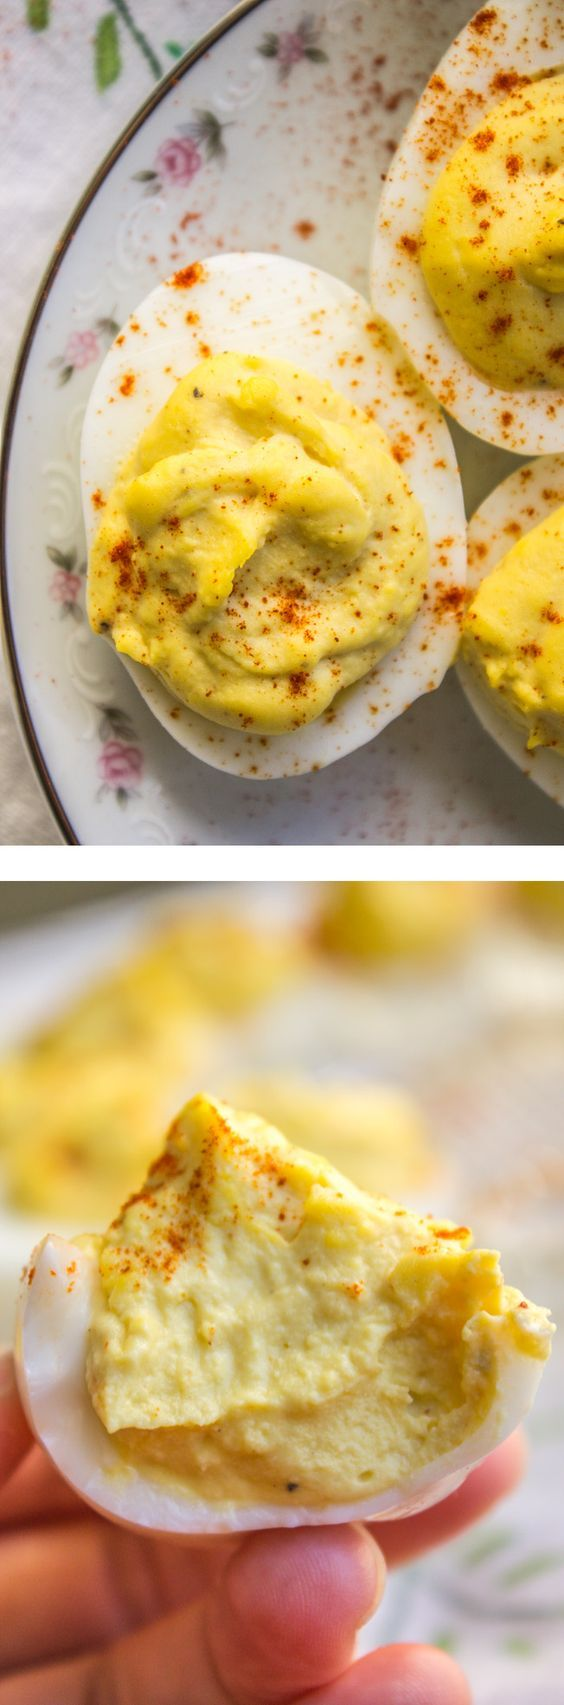 Deviled Eggs are an absolute must for Easter! This recipe is the classic version, nothing but mayonnaise, mustard, spices and perfectly cooked eggs. Okay and maybe a secret ingredient or two. from The Food Charlatan. (yummy recipes for two)